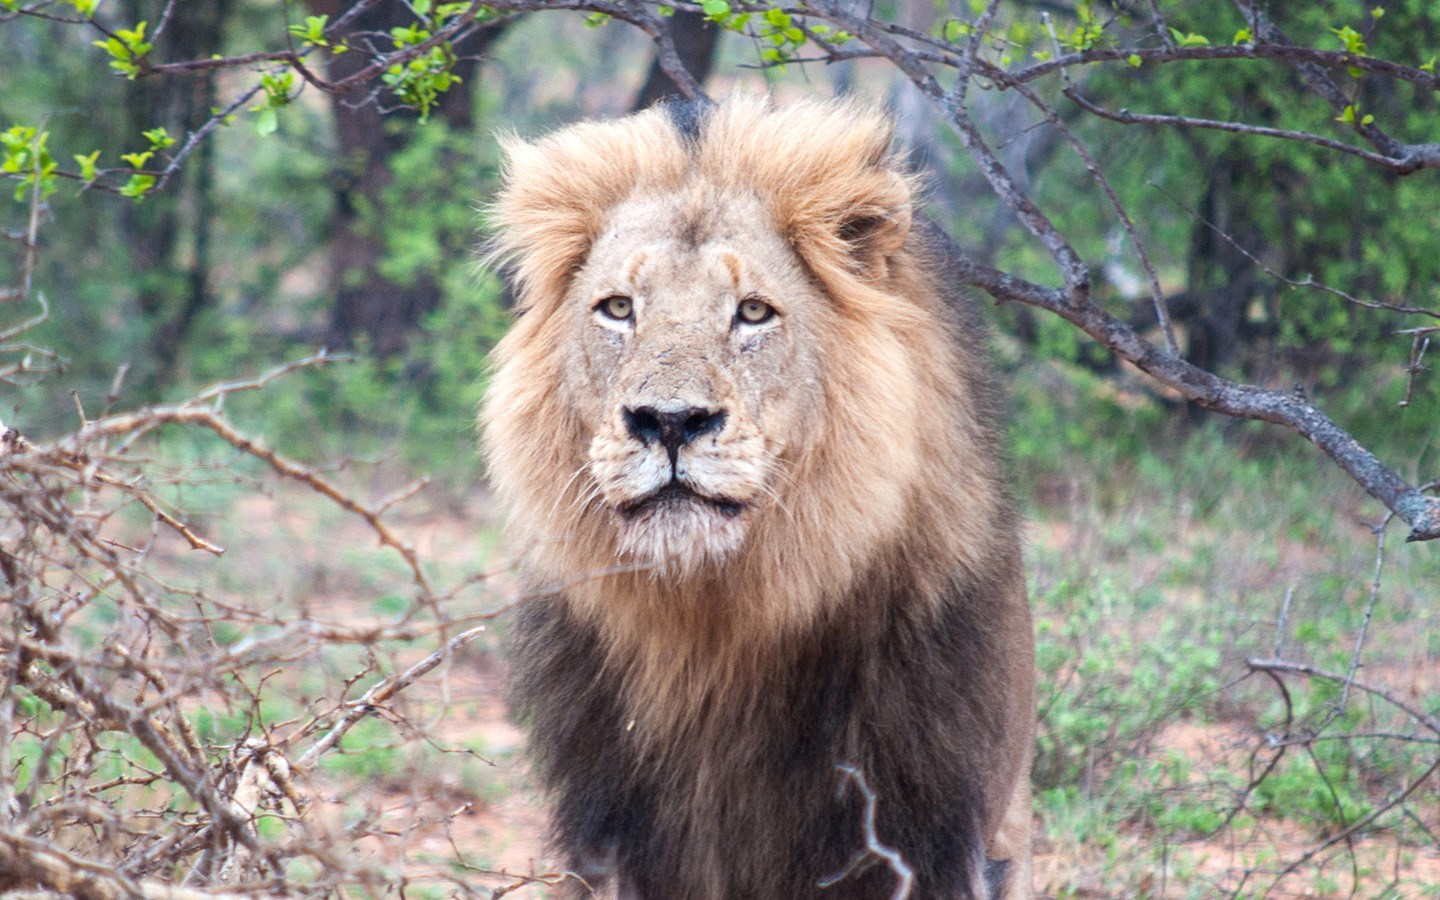 Male lion at Balule Game Reserve in South Africa's Kruger National Park